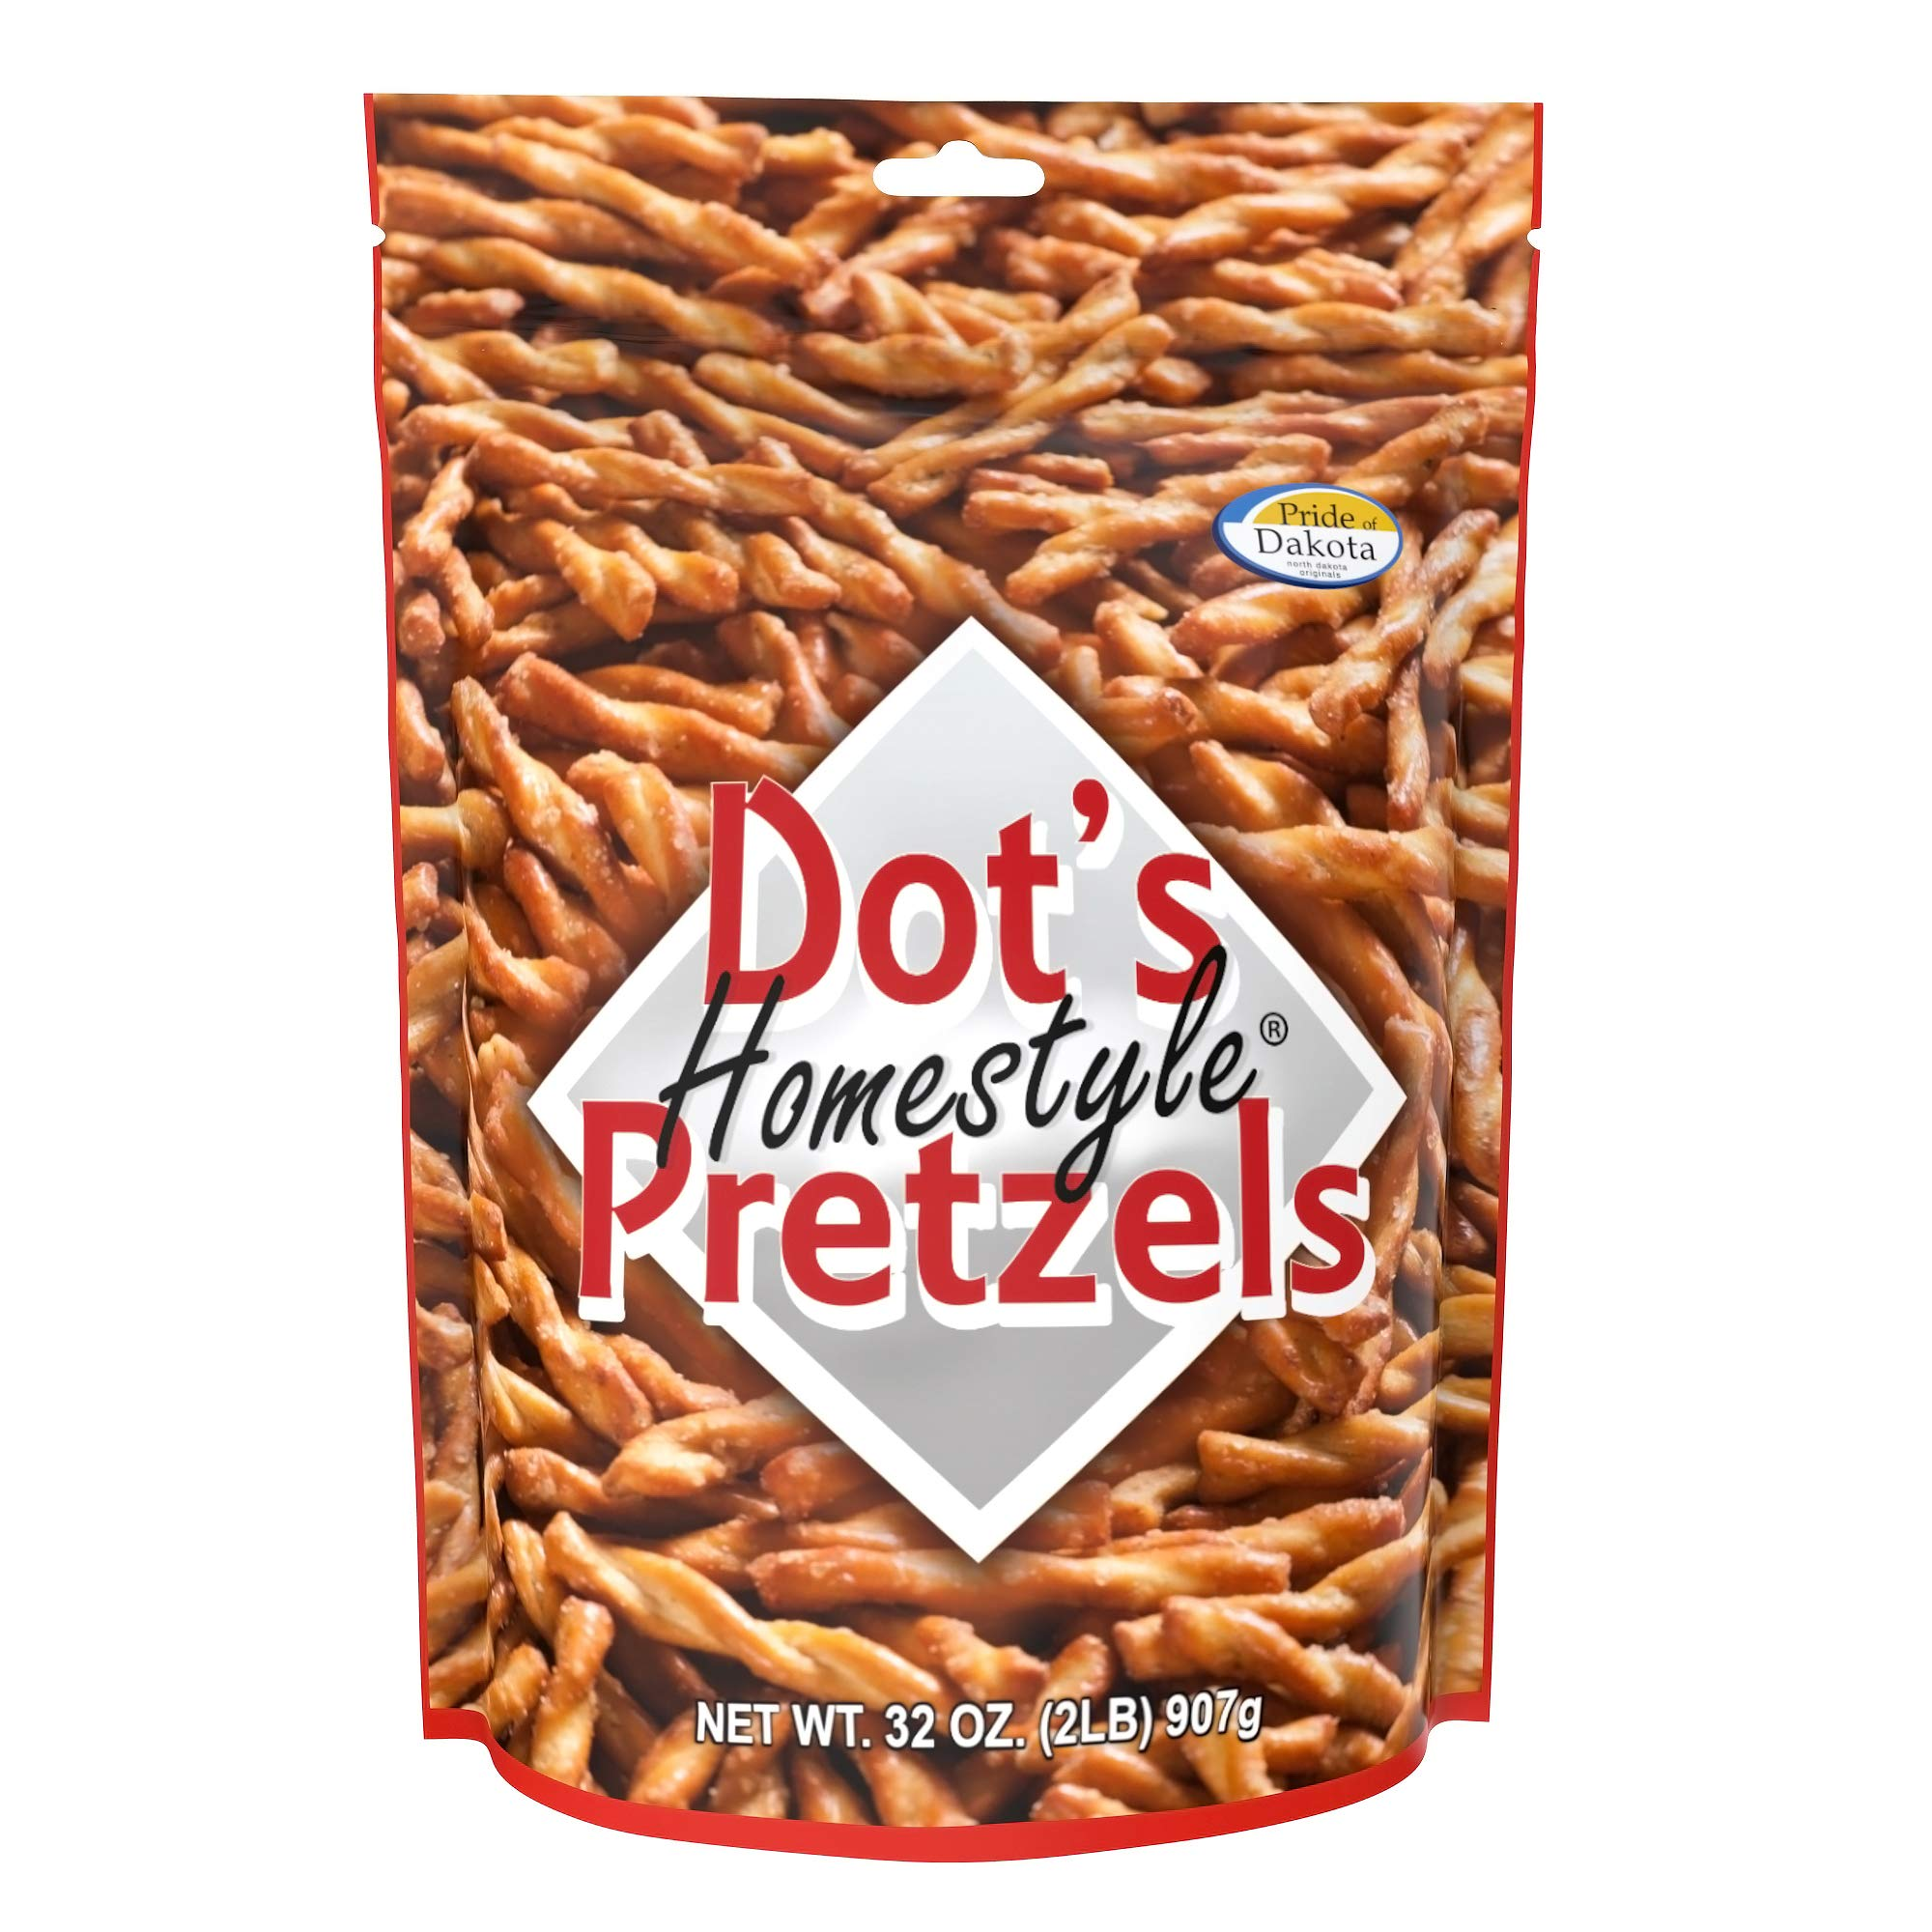 Dot's Homestyle Pretzels 2 lb. Bag (15 Bag Case) 32 oz. Seasoned Pretzel Snack Sticks (Packaging May Vary) by Dot's Homestyle Pretzels